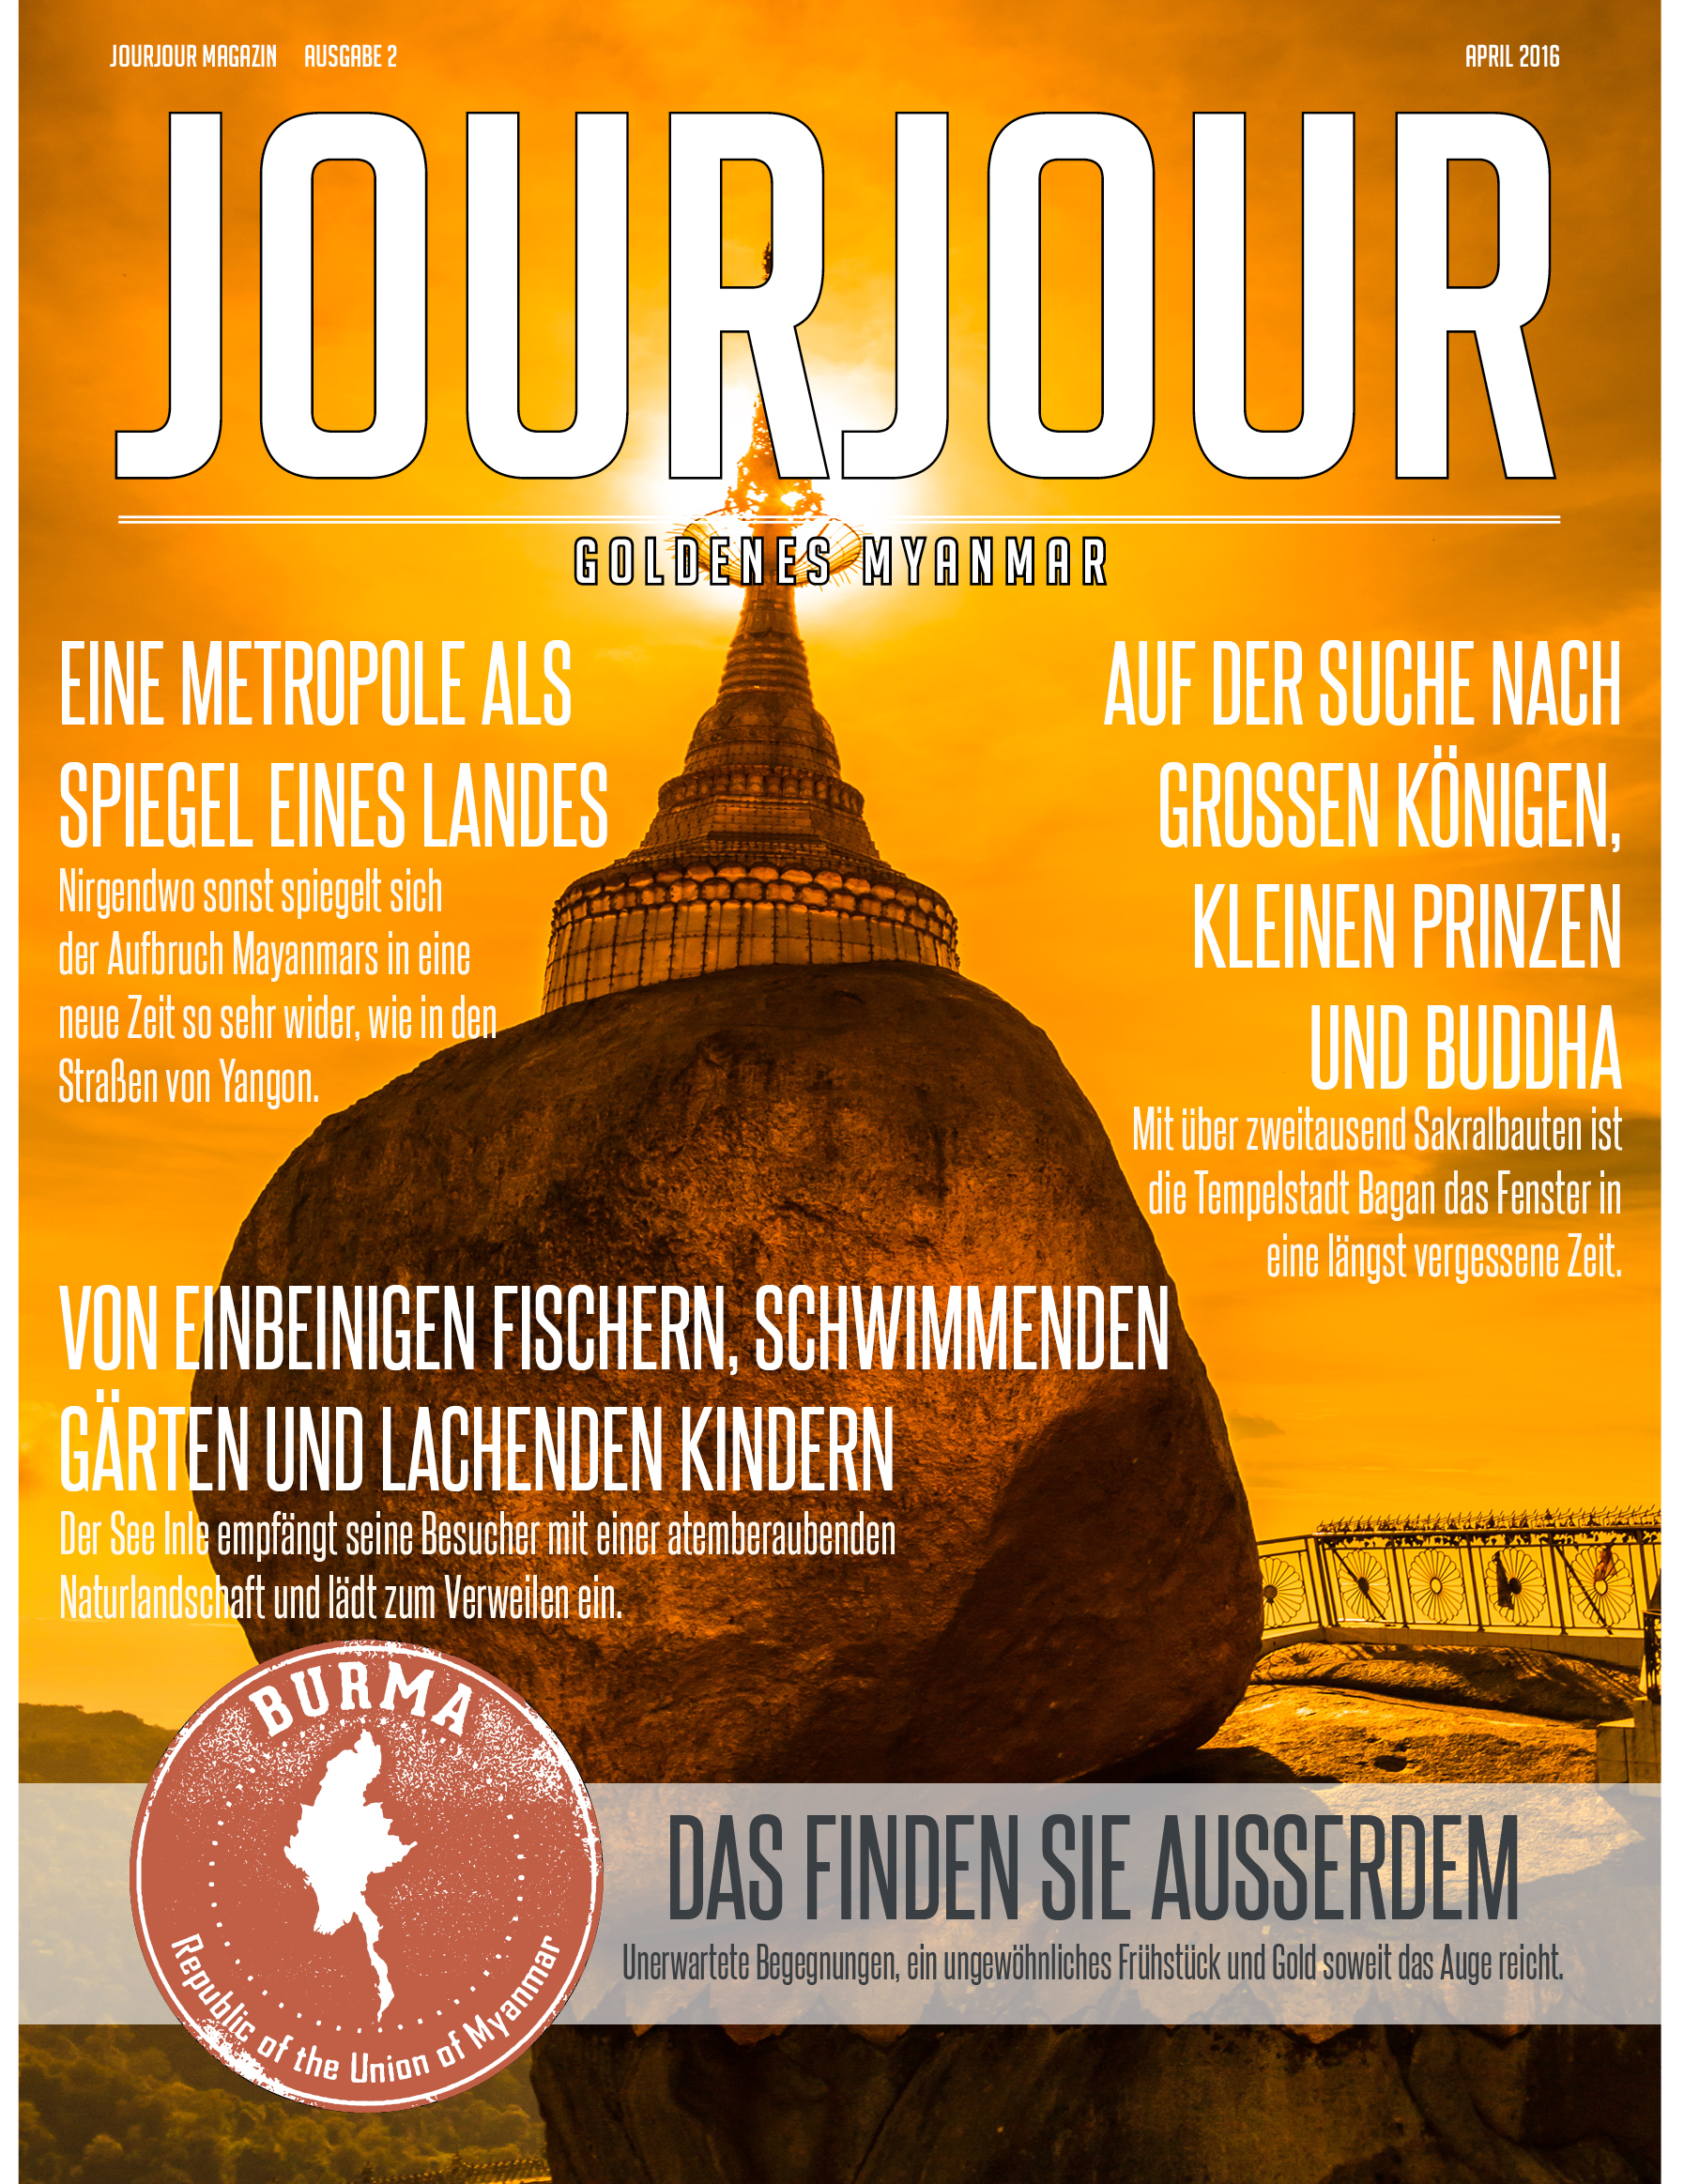 It's time for gold! Die neue Aprilausgabe des JOURJOUR Magazins ist da.